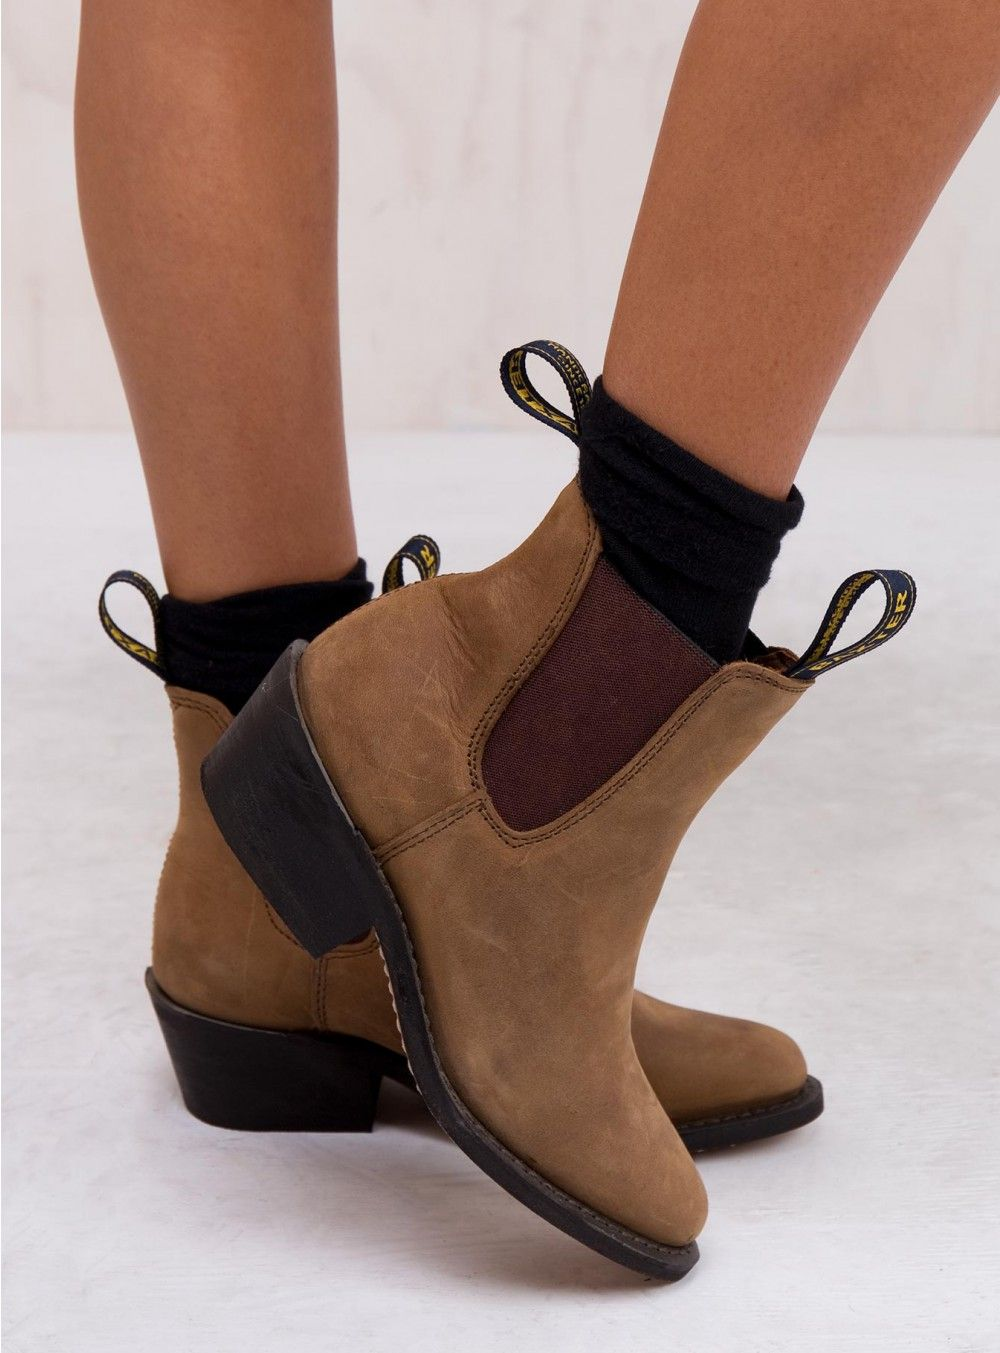 9dc18815c364a Baxter Dancer Boots Distressed Tan | my style | Boots, Baxter boots ...